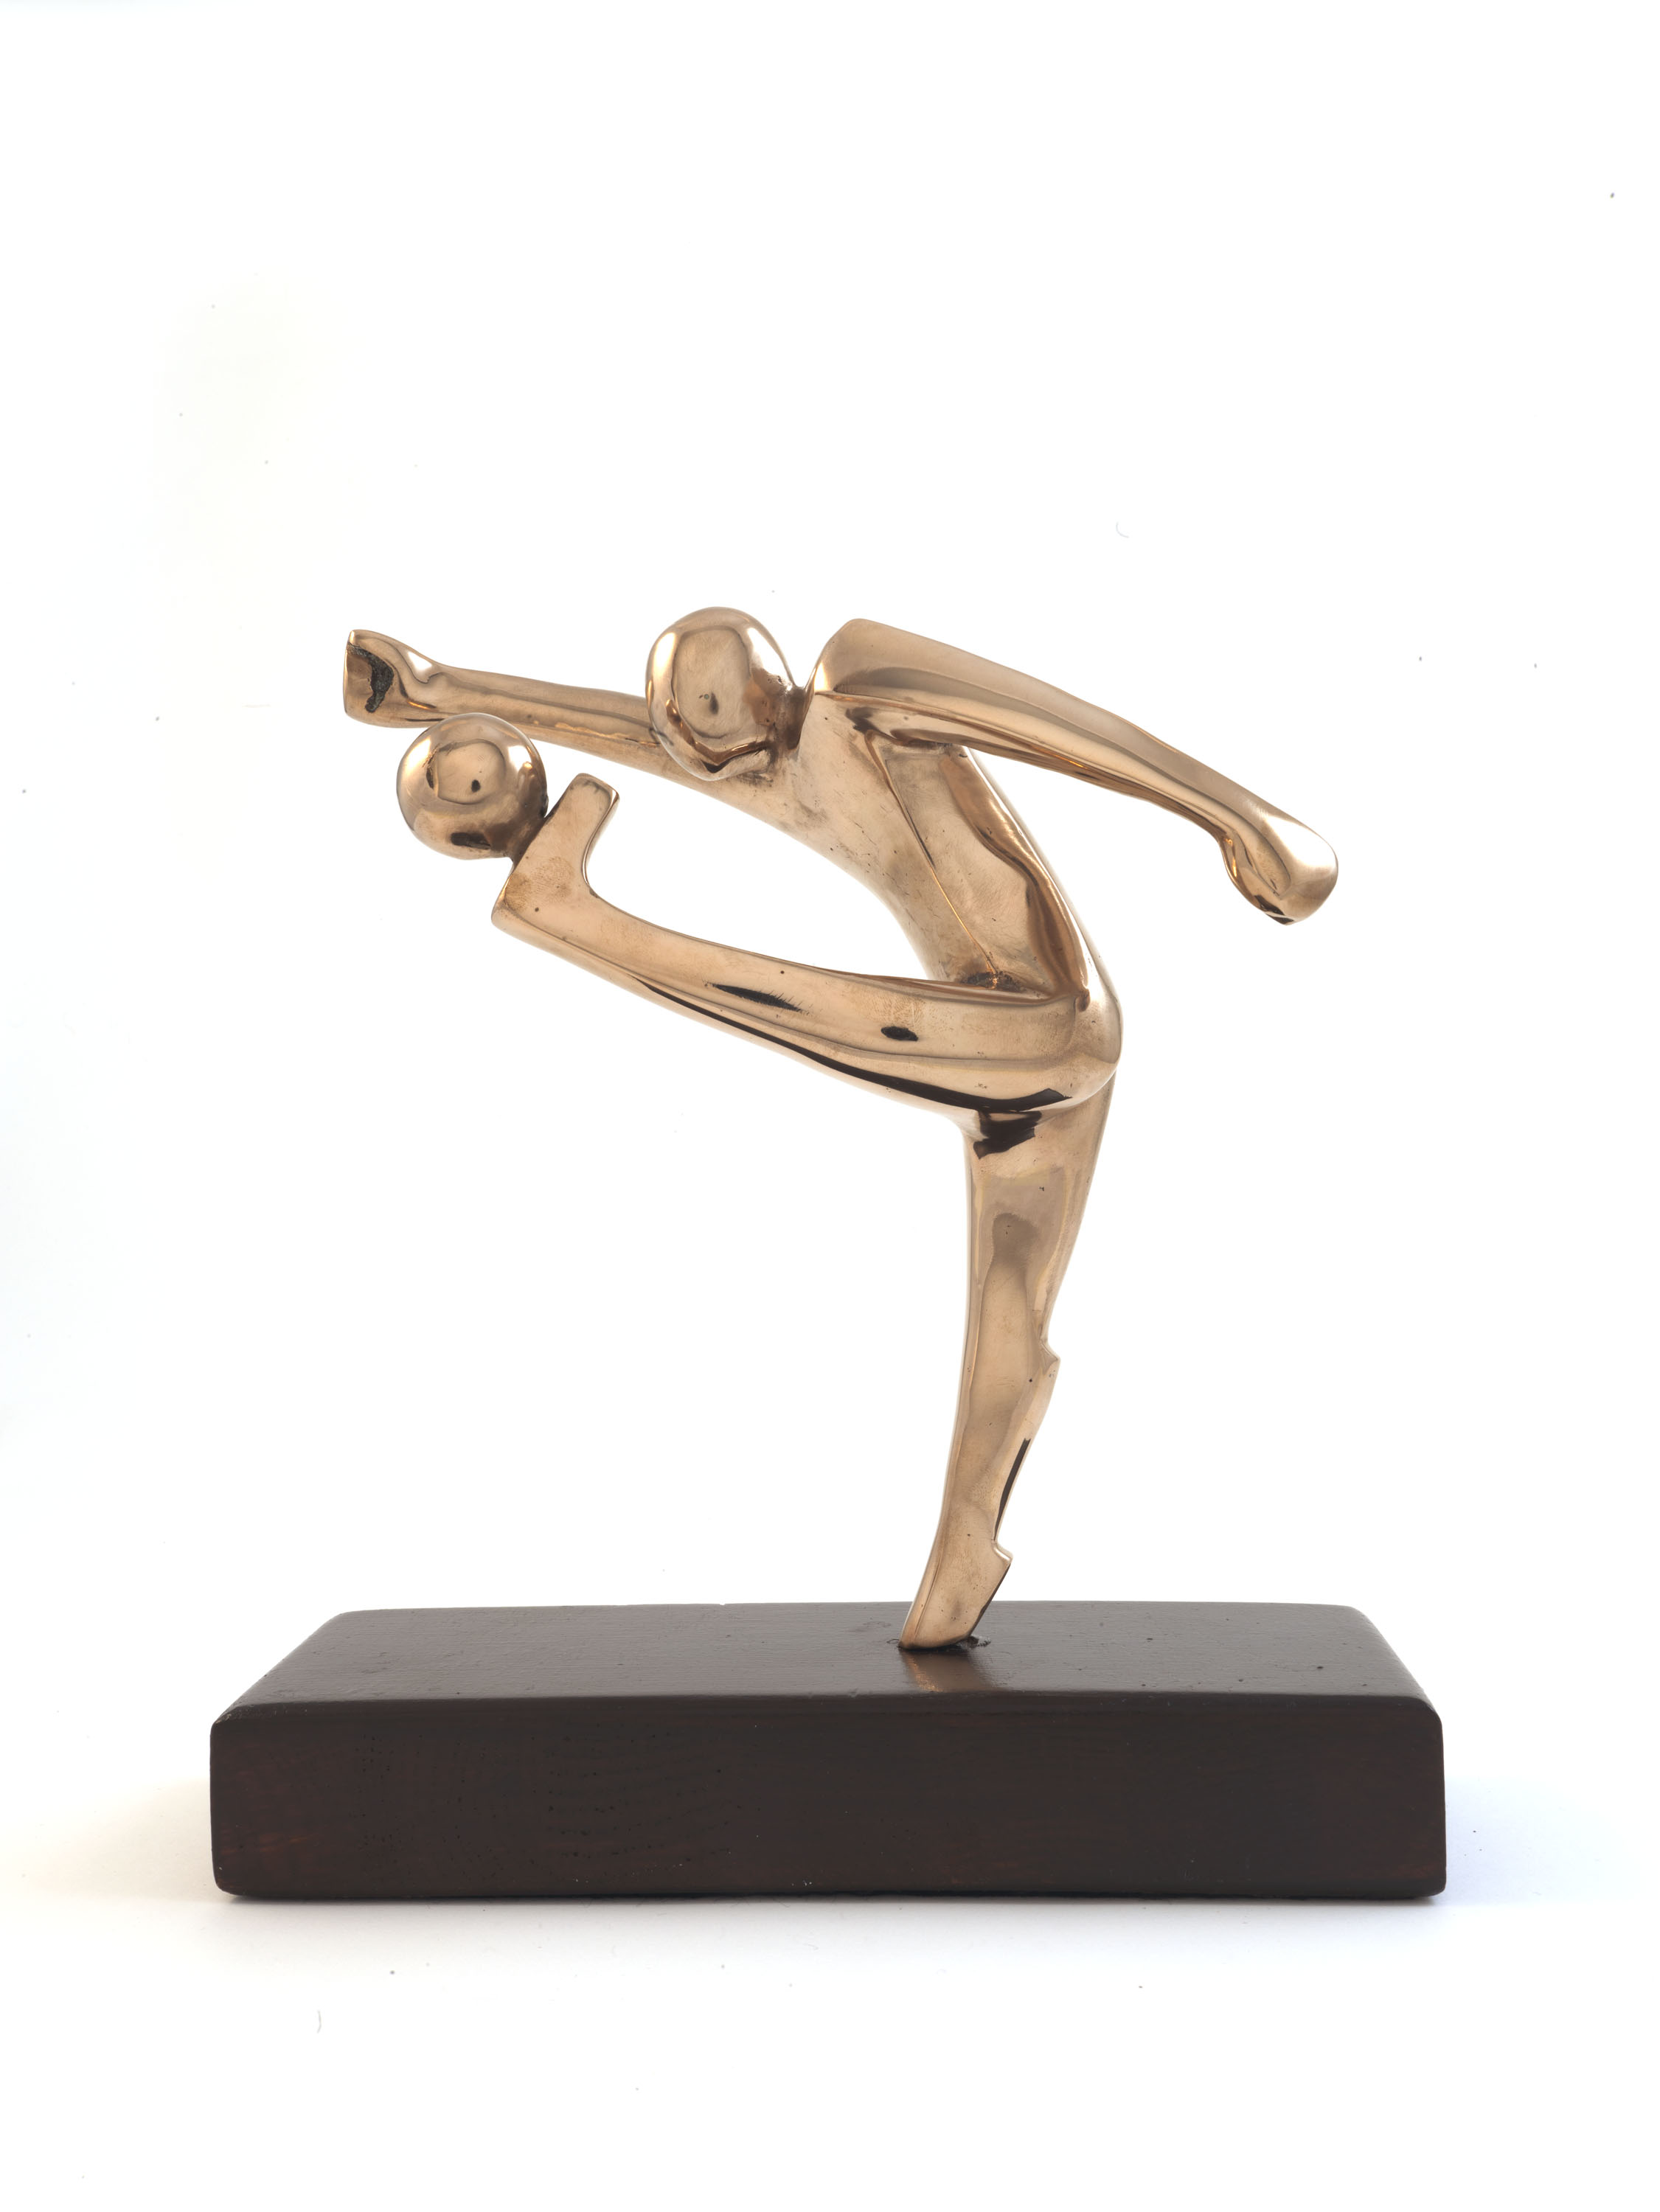 Football Player (Bronze) by Julia Godsiff